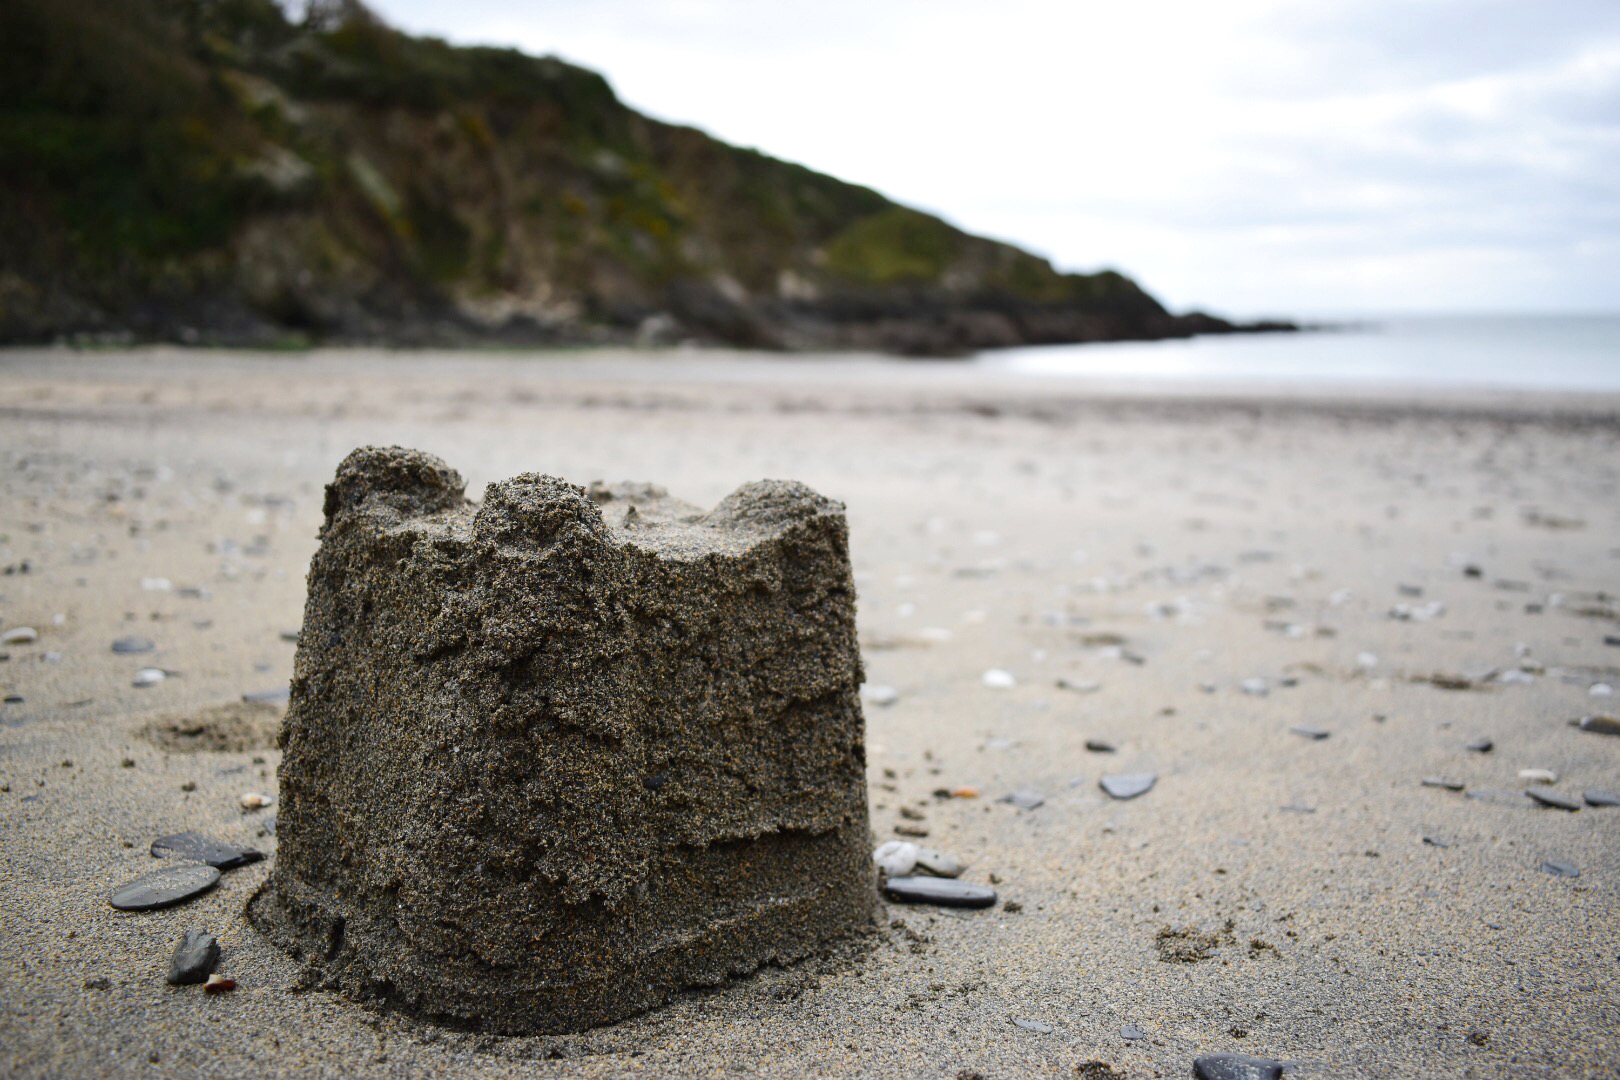 Sandcastle at Polridmouth